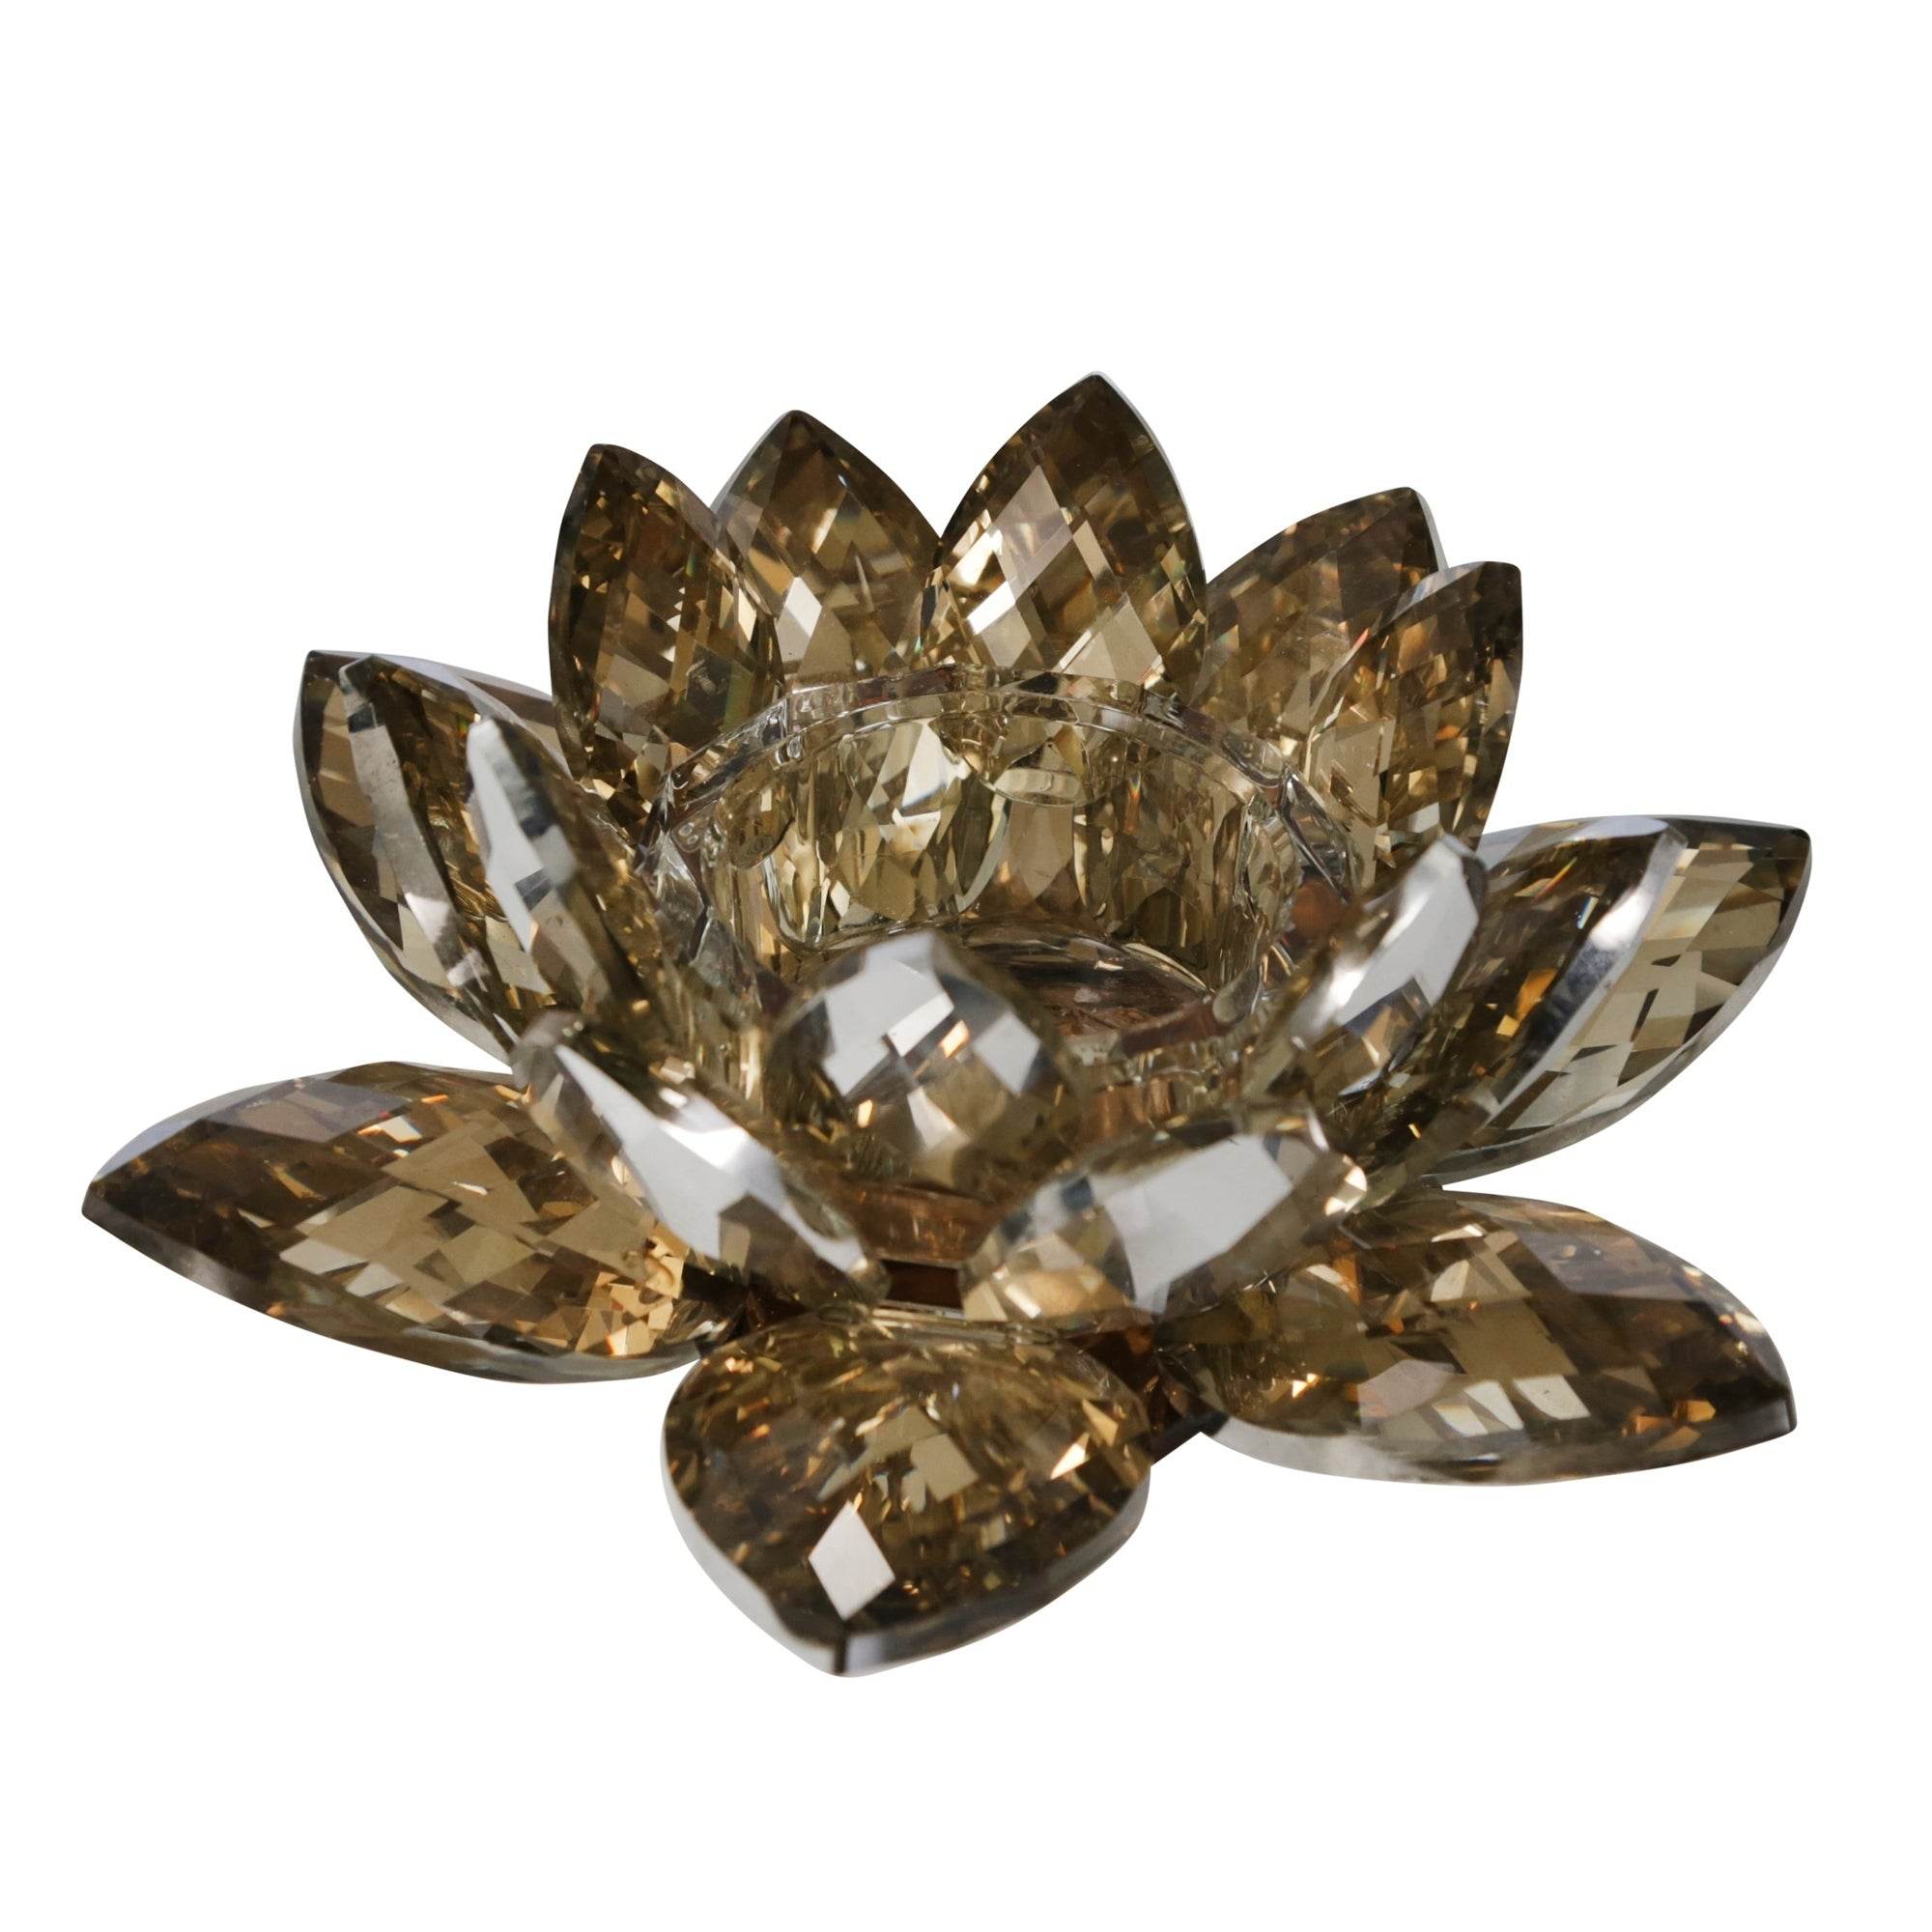 Sagebrook Home 13211 03 Crystal Lotus Tealight Candle Holder Amber Glass 8 25 X 8 25 X 3 Inches Overstock 21302113